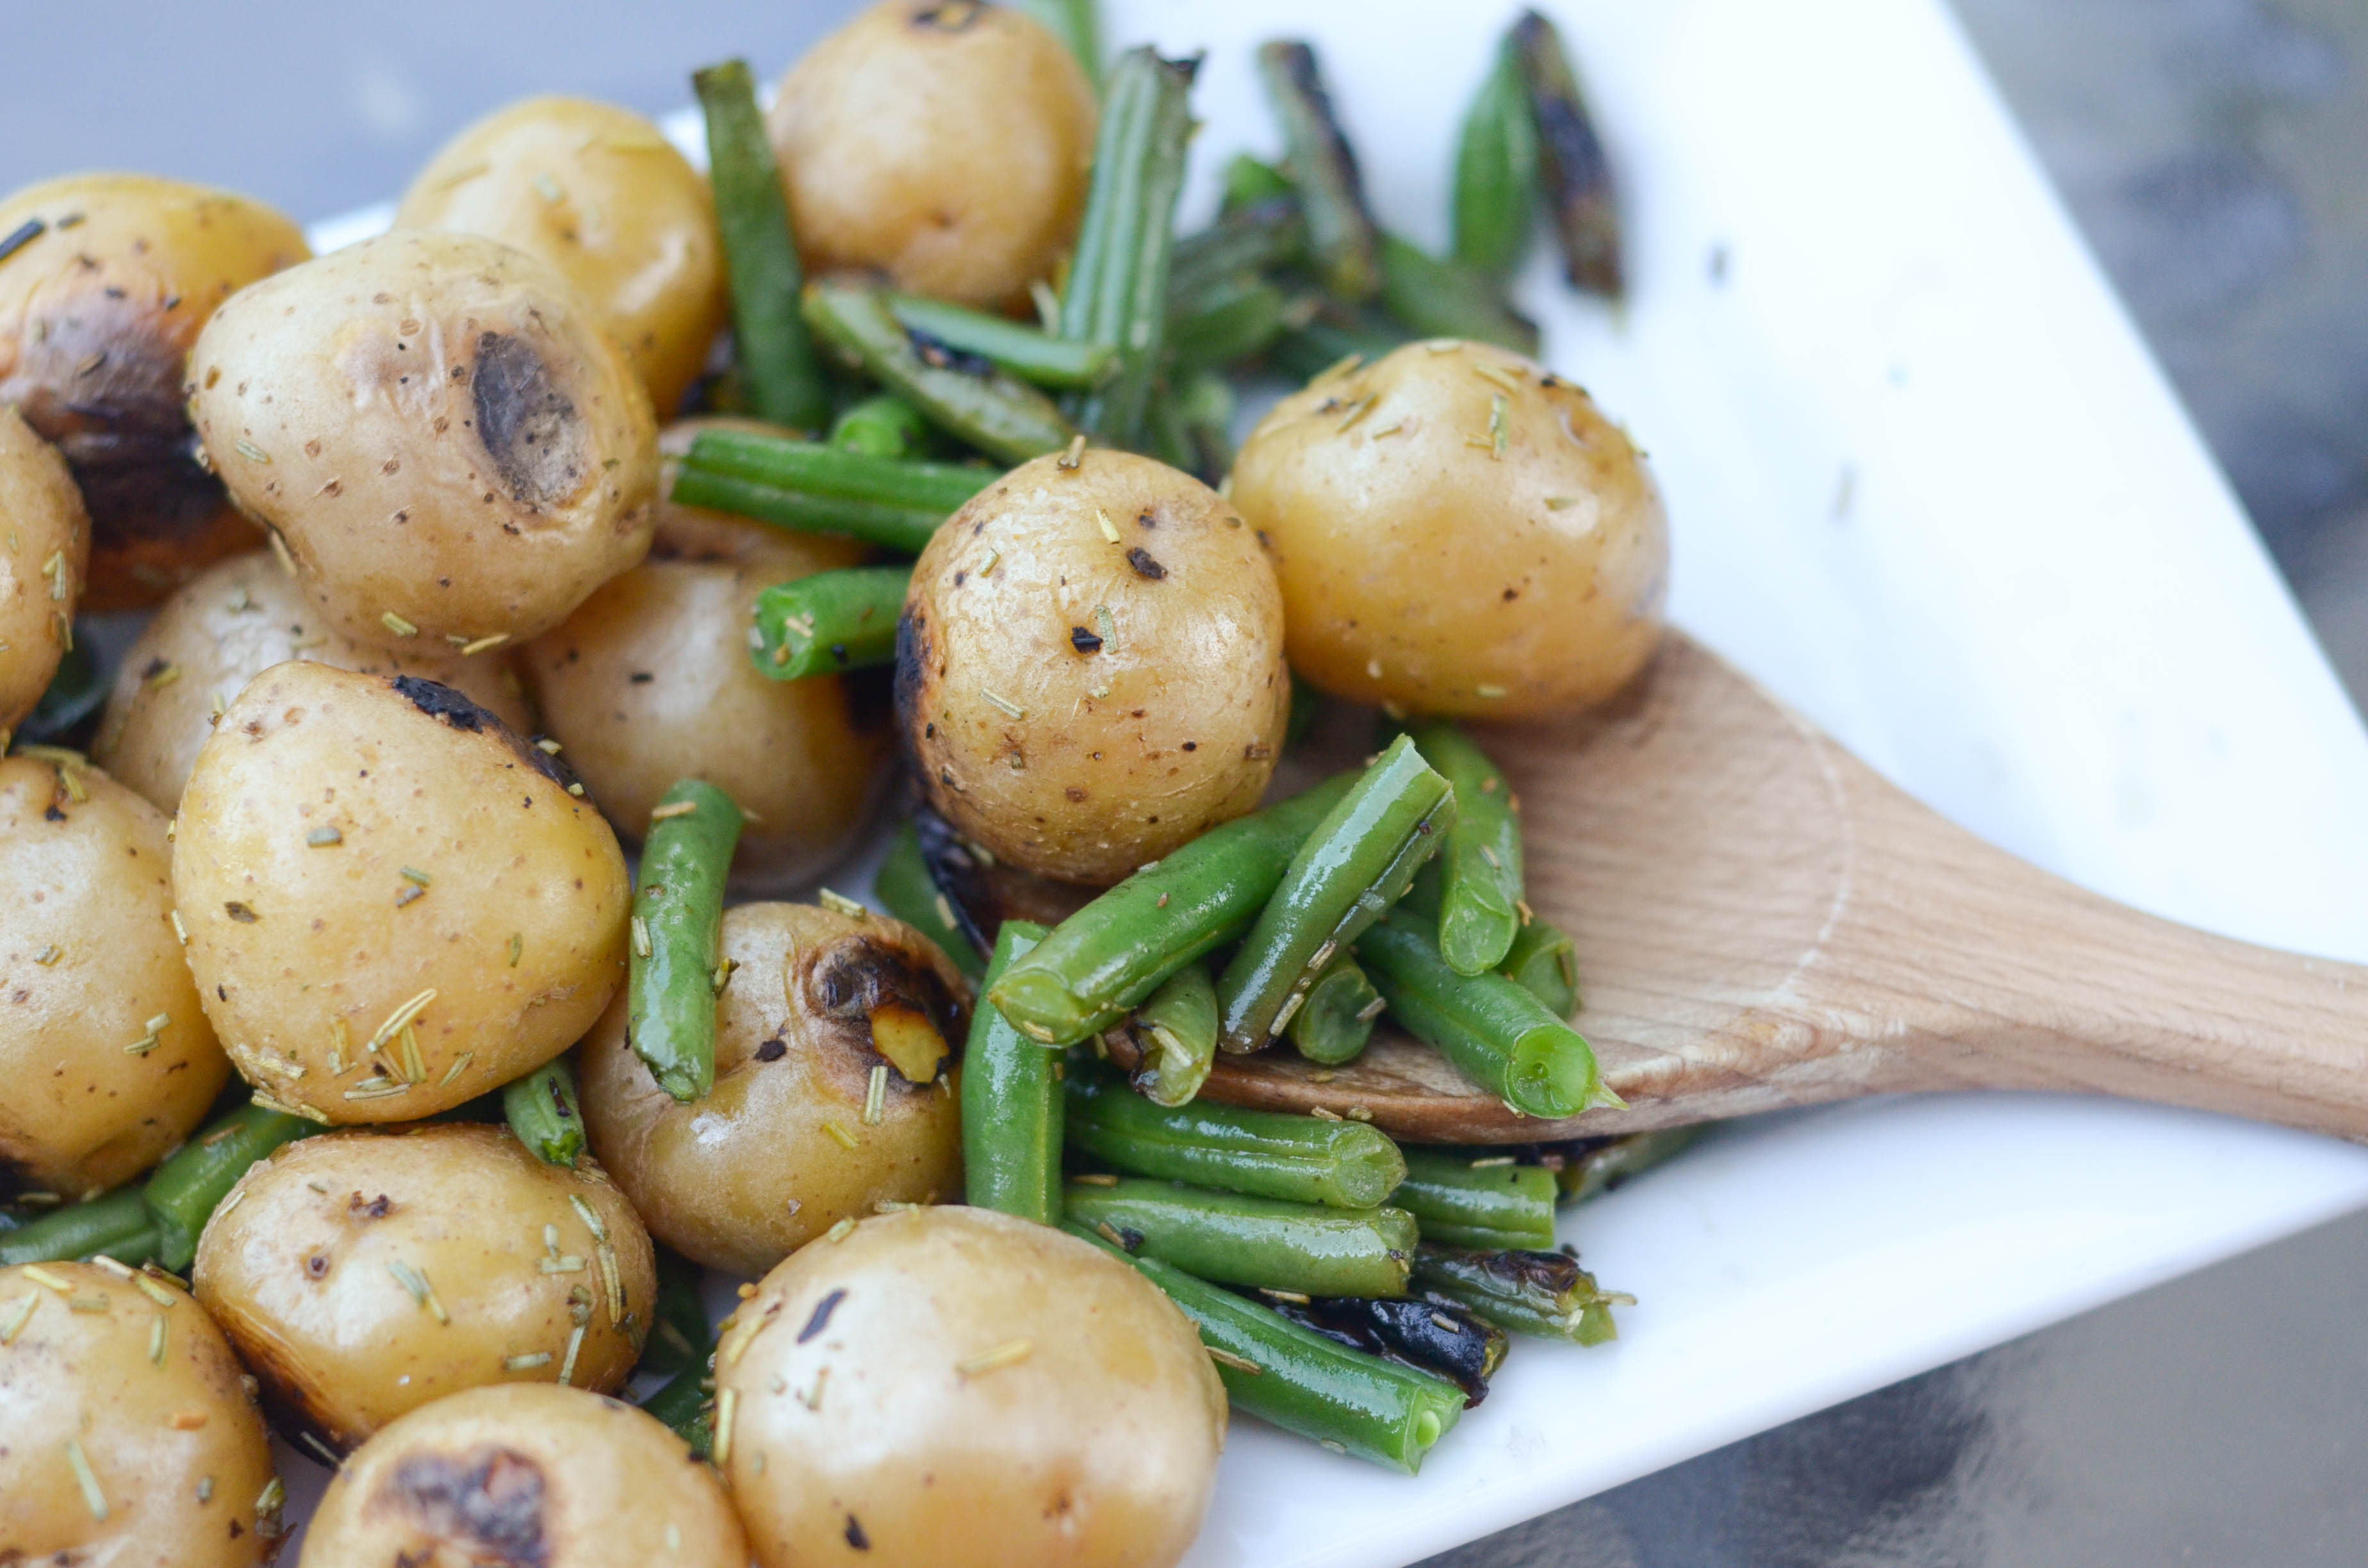 grilled-little-potatoes-and-green-beans-2